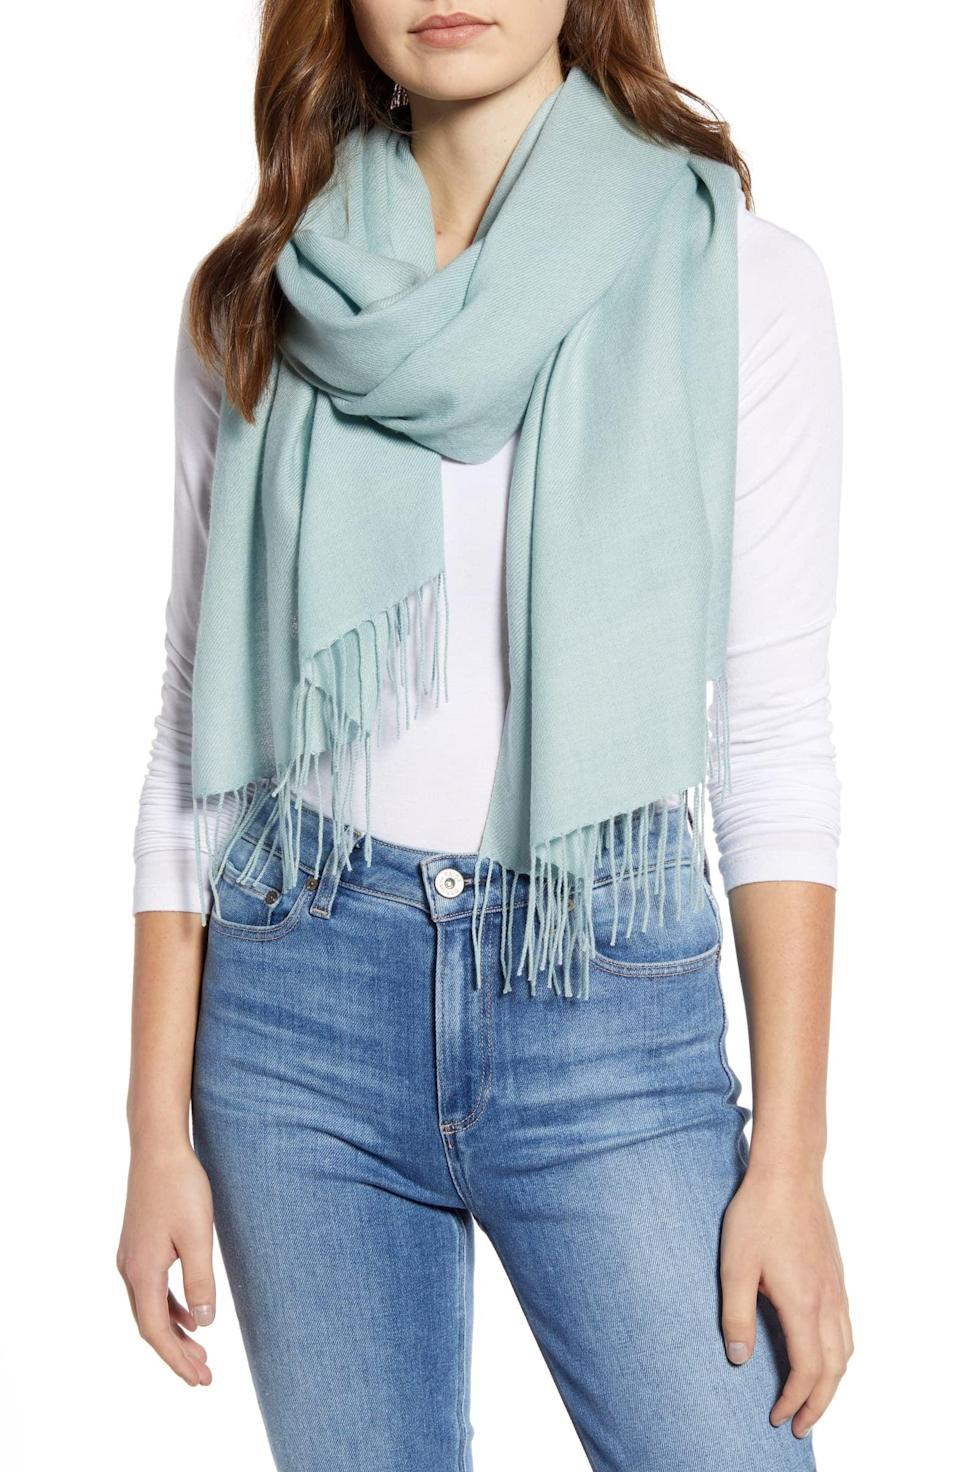 <p>This <span>Nordstrom Tissue Weight Wool &amp; Cashmere Scarf</span> ($99) will not only keep you warm on chilly airplanes, but can also act as a barrier between you and the seat. It's a win win.</p>